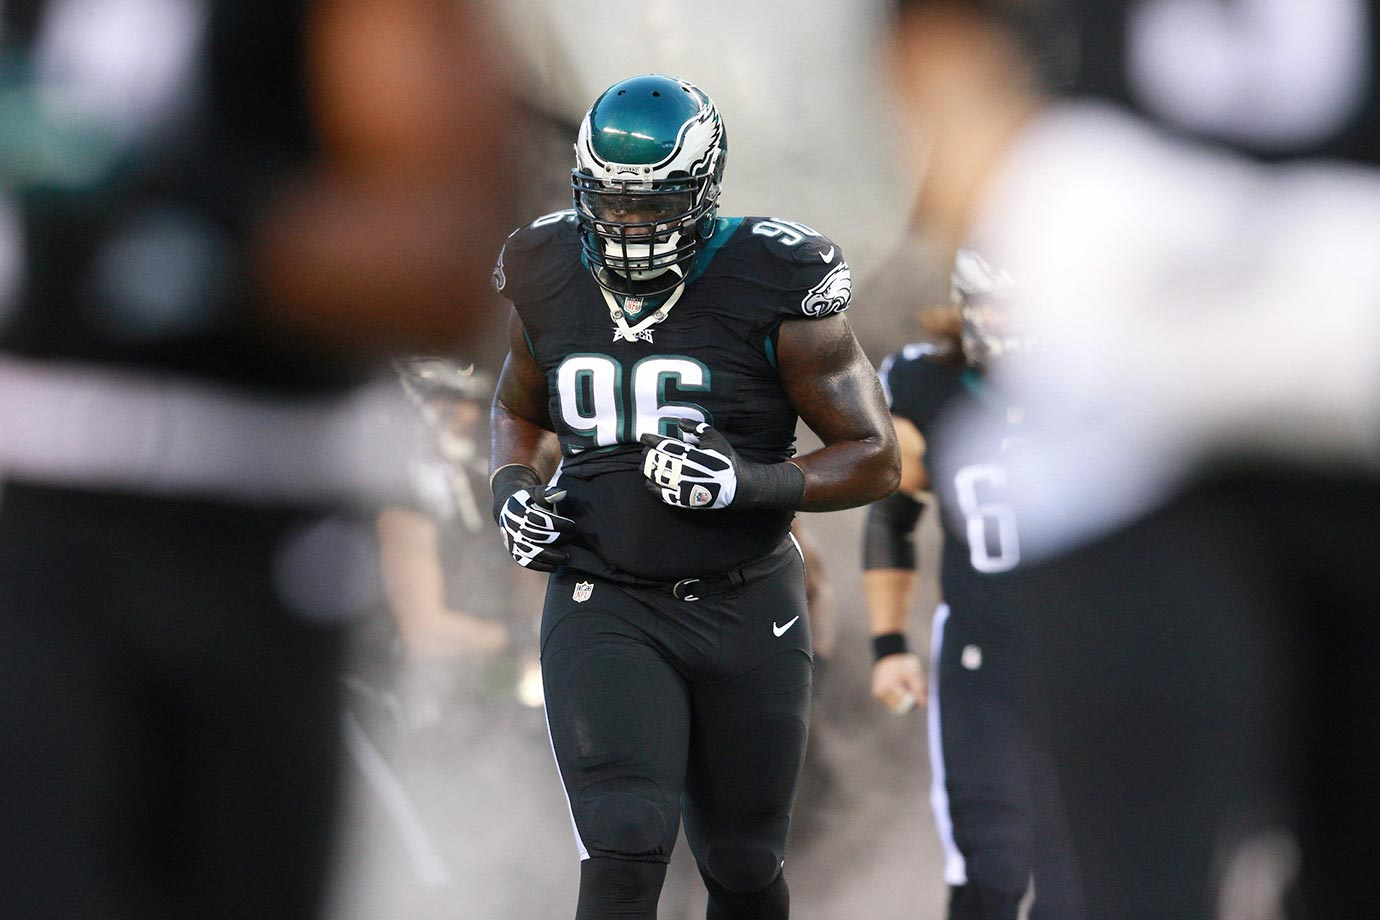 The Philly front seven is full of talent, but Logan is the nose tackle who makes it all go. No defensive tackle had more solo tackles last season than his 44, and he led the NFL in run stops at tackle with 33.